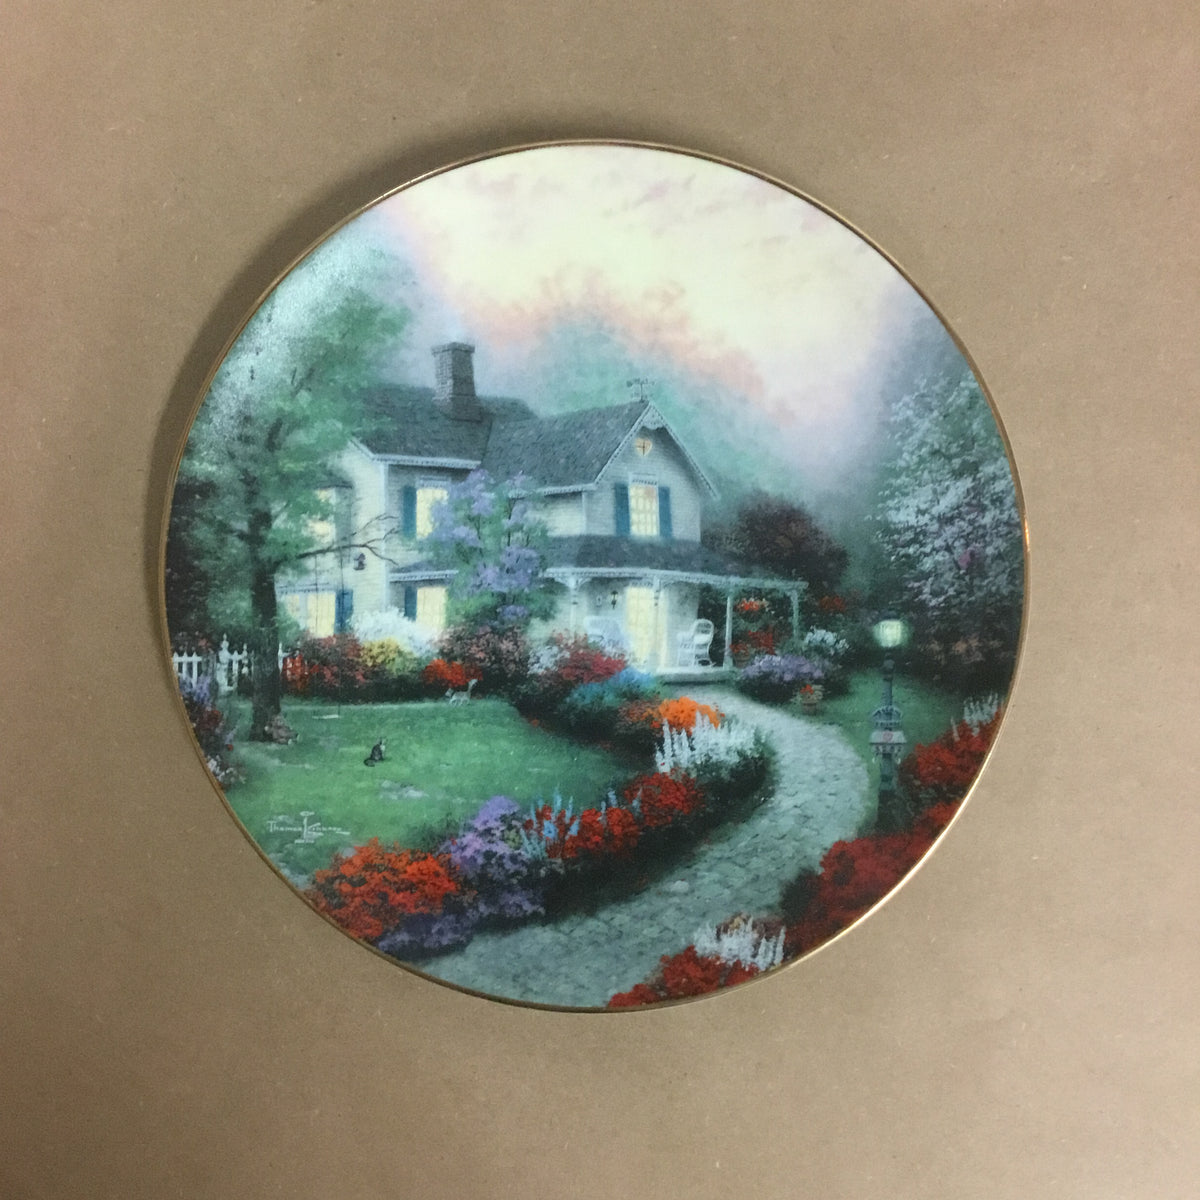 "Thomas Kinkade ""Home is Where the Heart Is"" Collectible Plate"